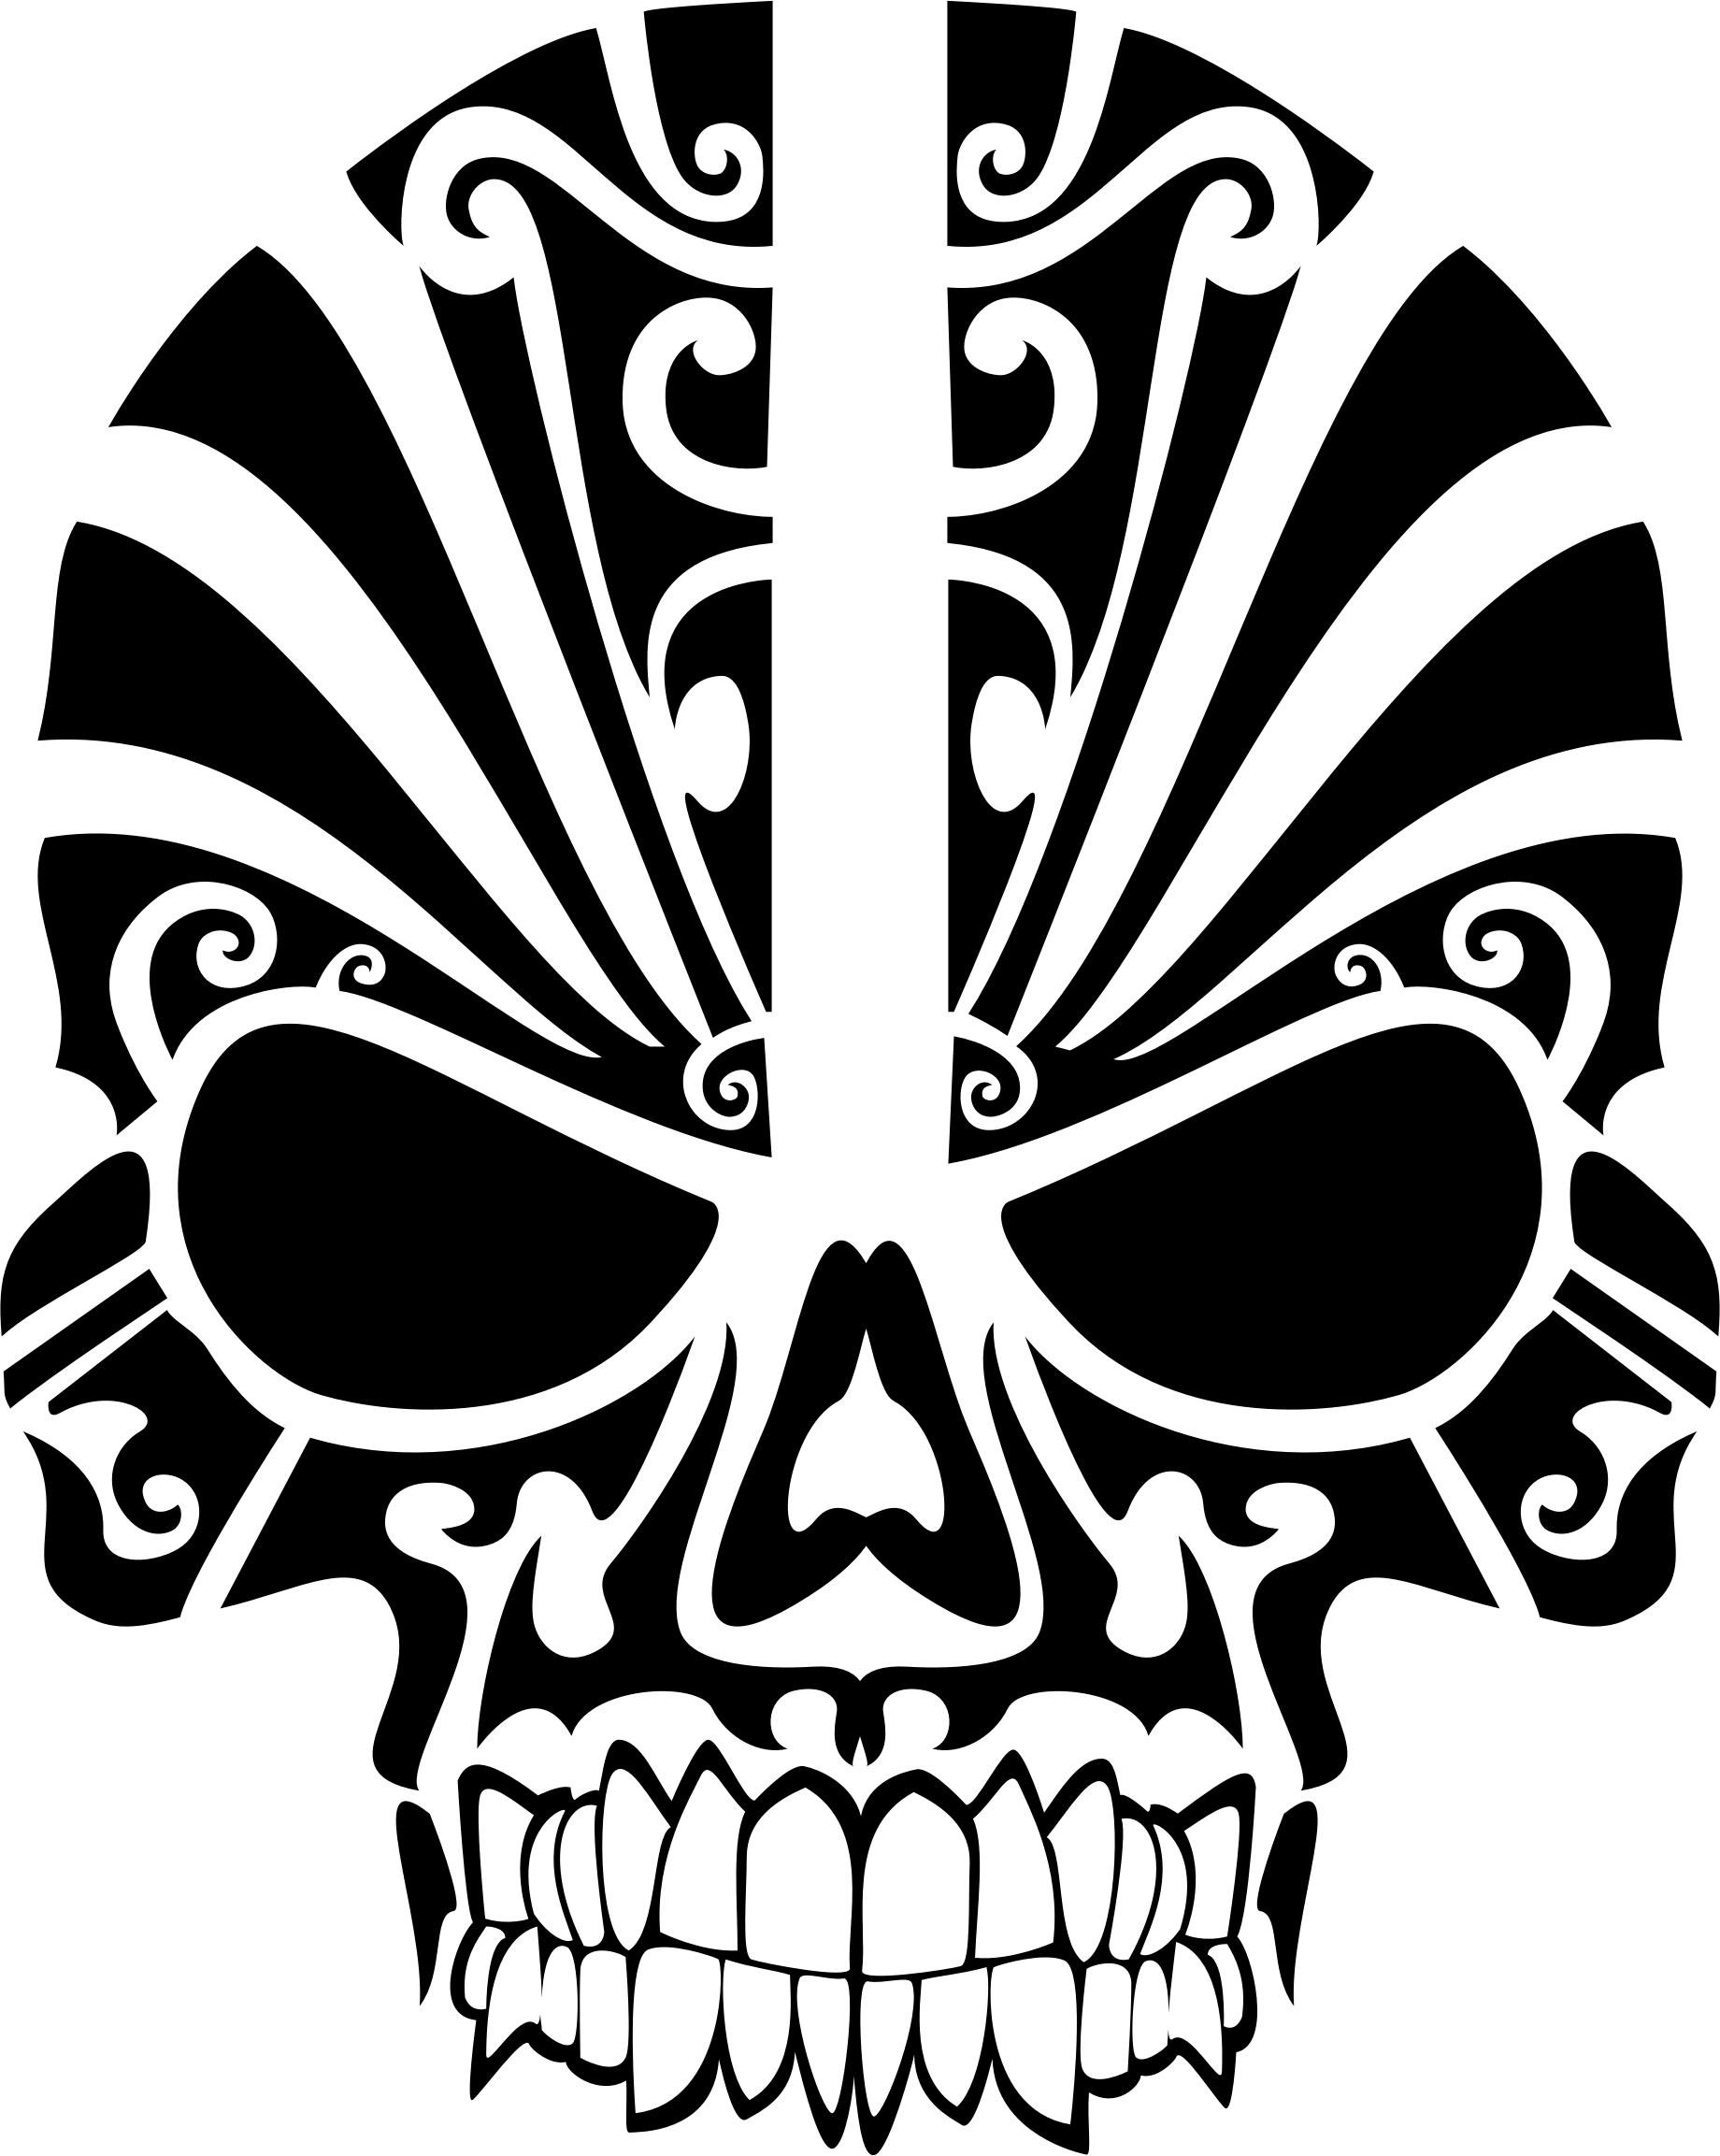 1840x2306 Free Skull Icons Png, Skull Images